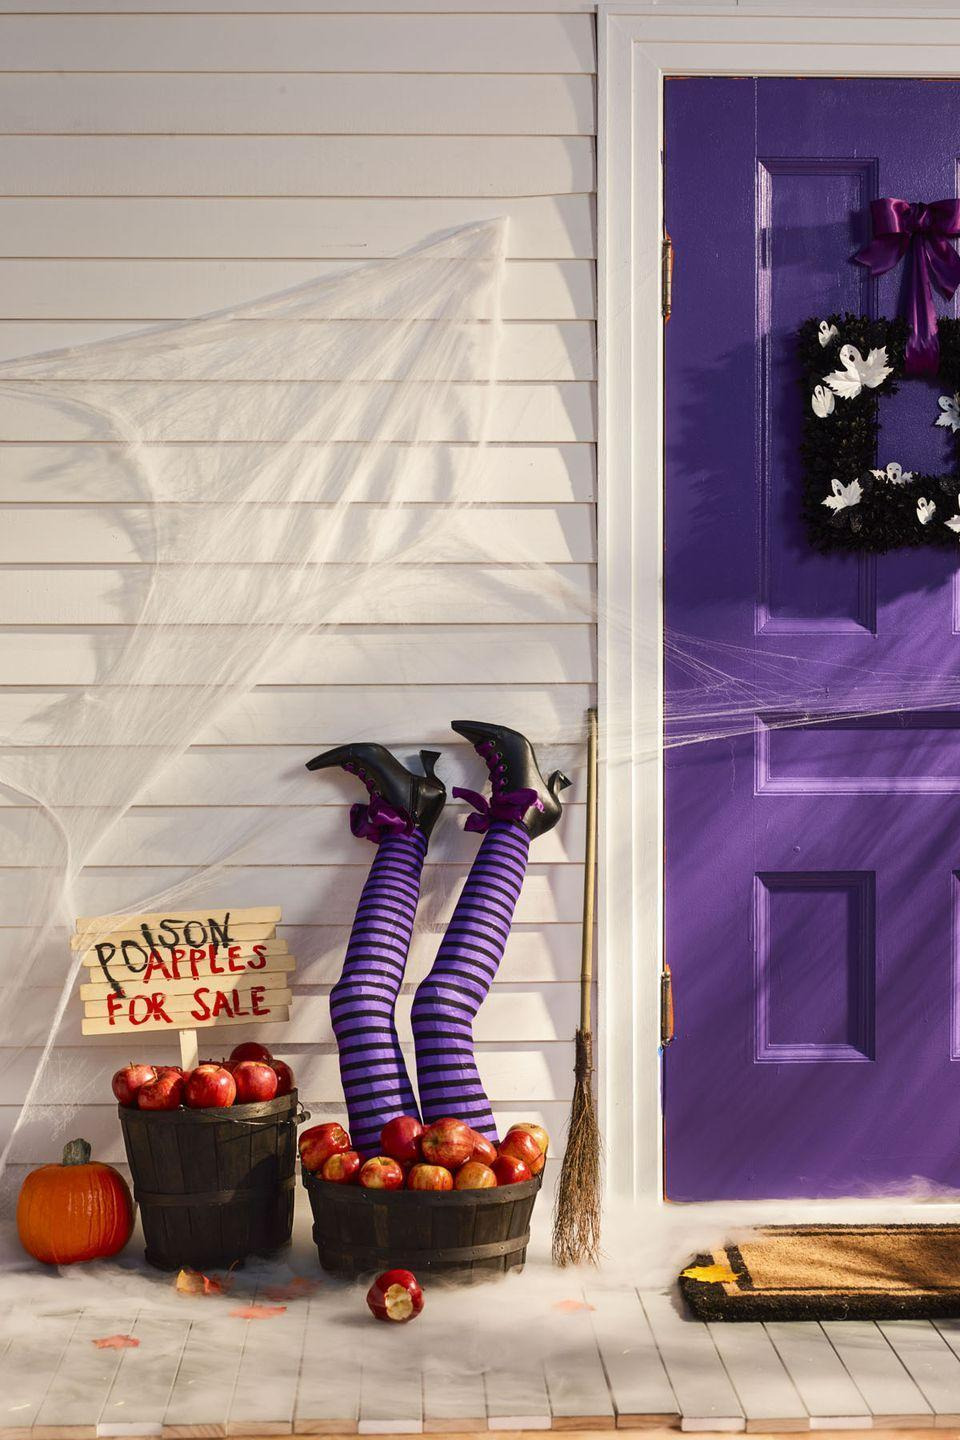 """<p>Flank your front door with apple barrels, then push in pool noodles that are outfitted in striped stockings and pointy heels for a bewitching outdoor decoration.</p><p>1. Cut two pool noodles to leg size (about <span>30</span>"""" tall).</p><p>2. To make knees, draw a <span>3</span>"""" half-circle in middle of each leg and cut the shape out. Pull edges together and secure with duct tape.</p><p>3. Tape quilt batting around pool noodles, adding extra layers to hip and thigh areas and an almond shape where it bends to complete knee. Use more tape to smooth out form.</p><p>4. Pull tights over legs. Stuff witch boots with batting and secure to legs by tying laces tightly.</p><p>5. To make sign, hot-glue six paint stirrers together to form a jagged rectangle, then hot-glue another stirrer to the back as a signpost. Paint on a phrase like """"Poison Apples for Sale.""""</p>"""